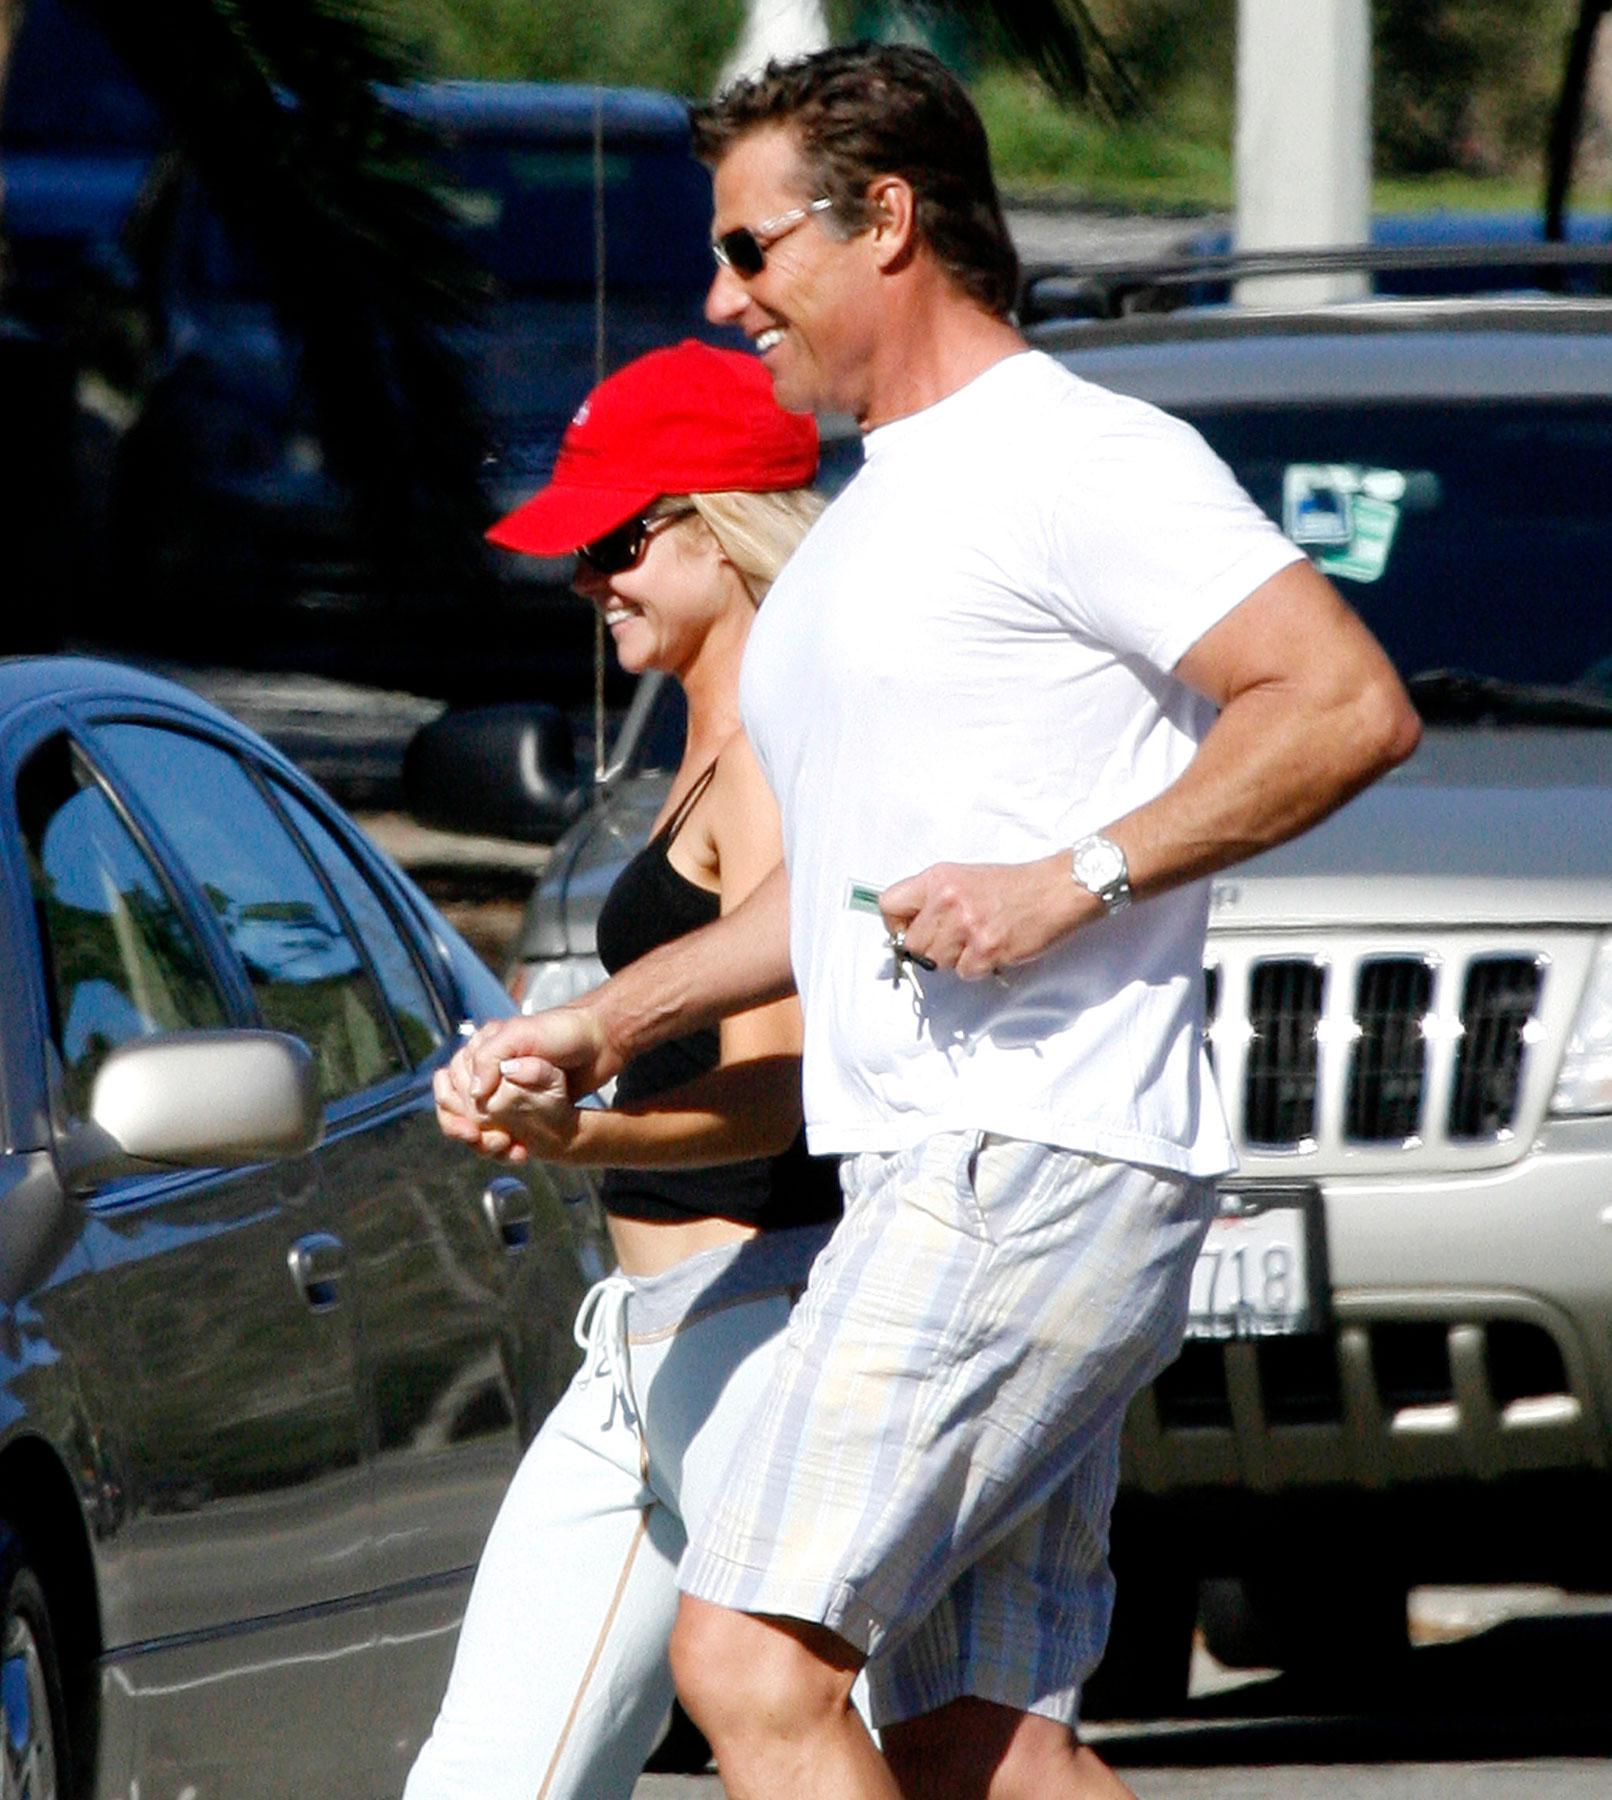 Denise Richards Gets a Hand From Her Mystery Man